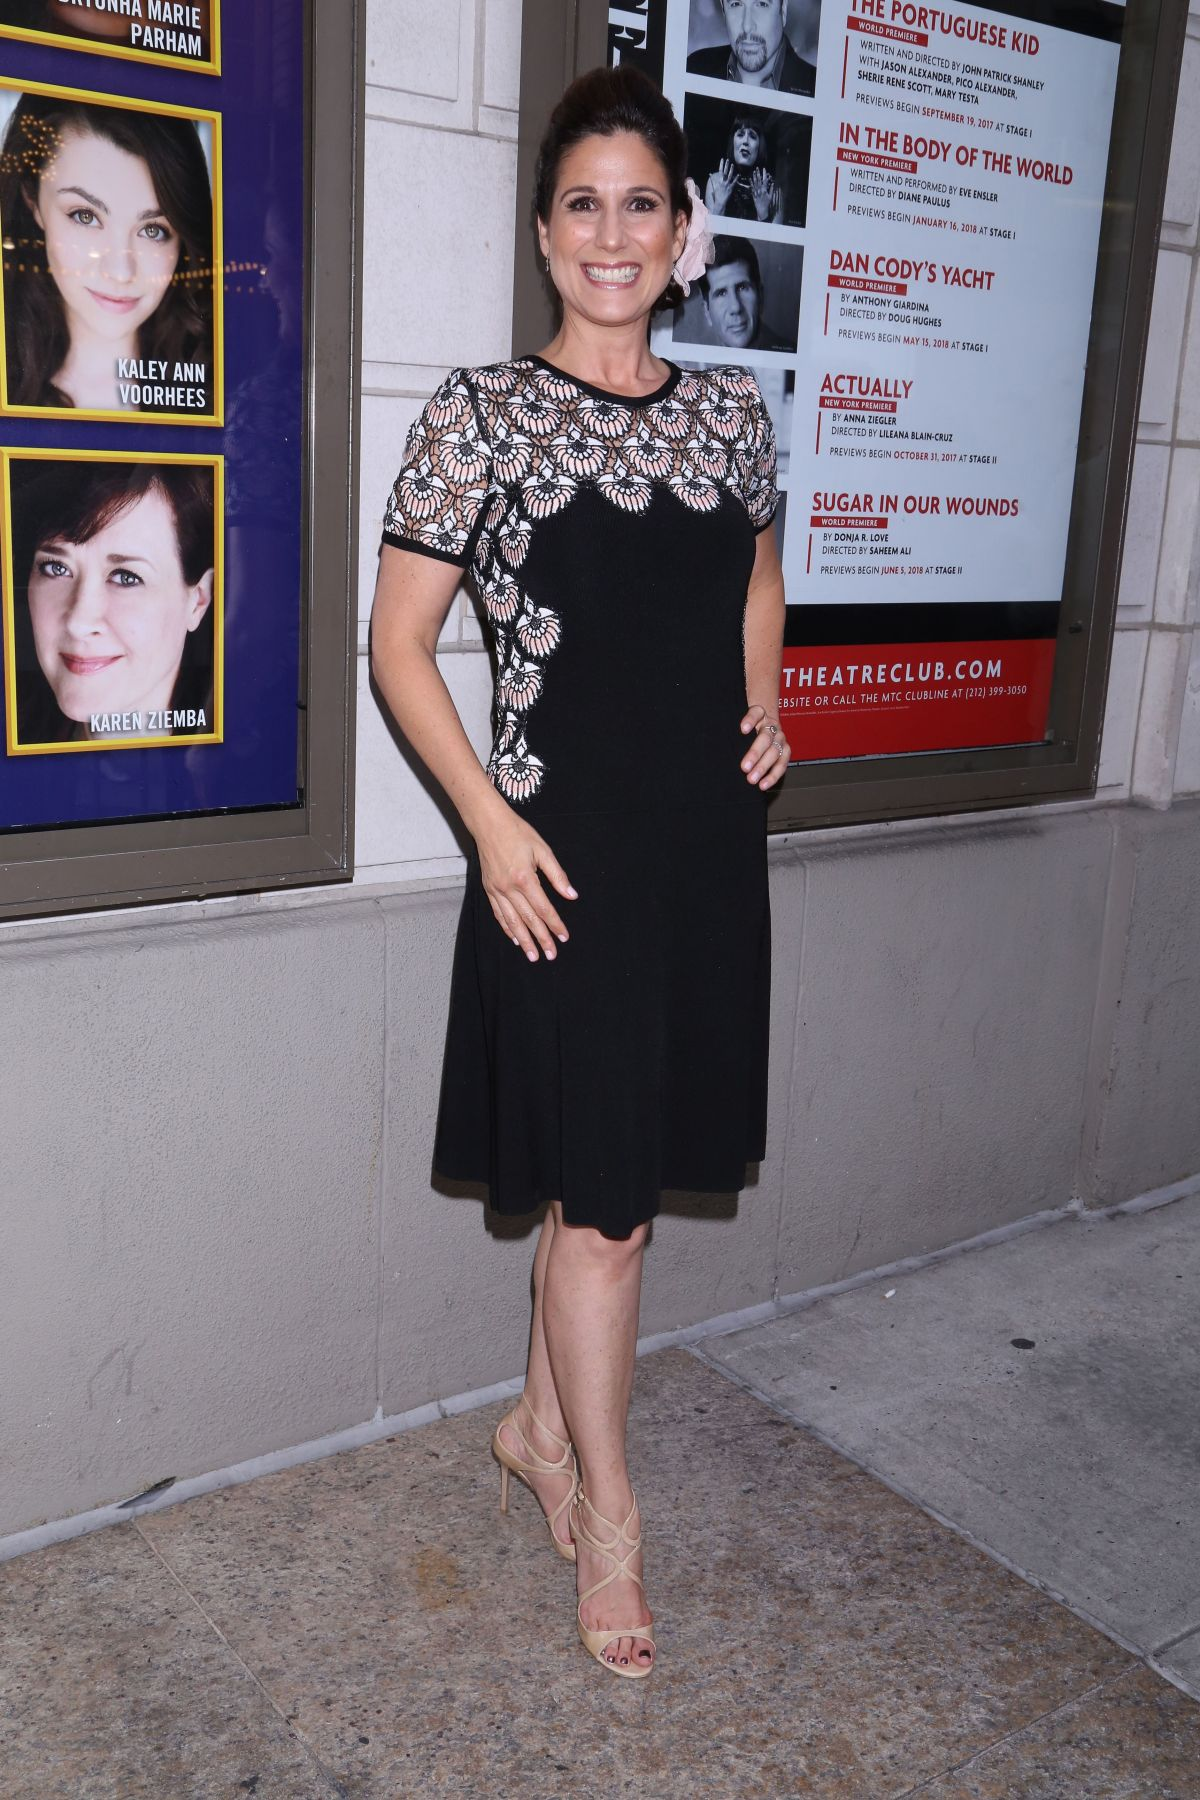 Margaret colin prince of broadway premiere in new york new pictures